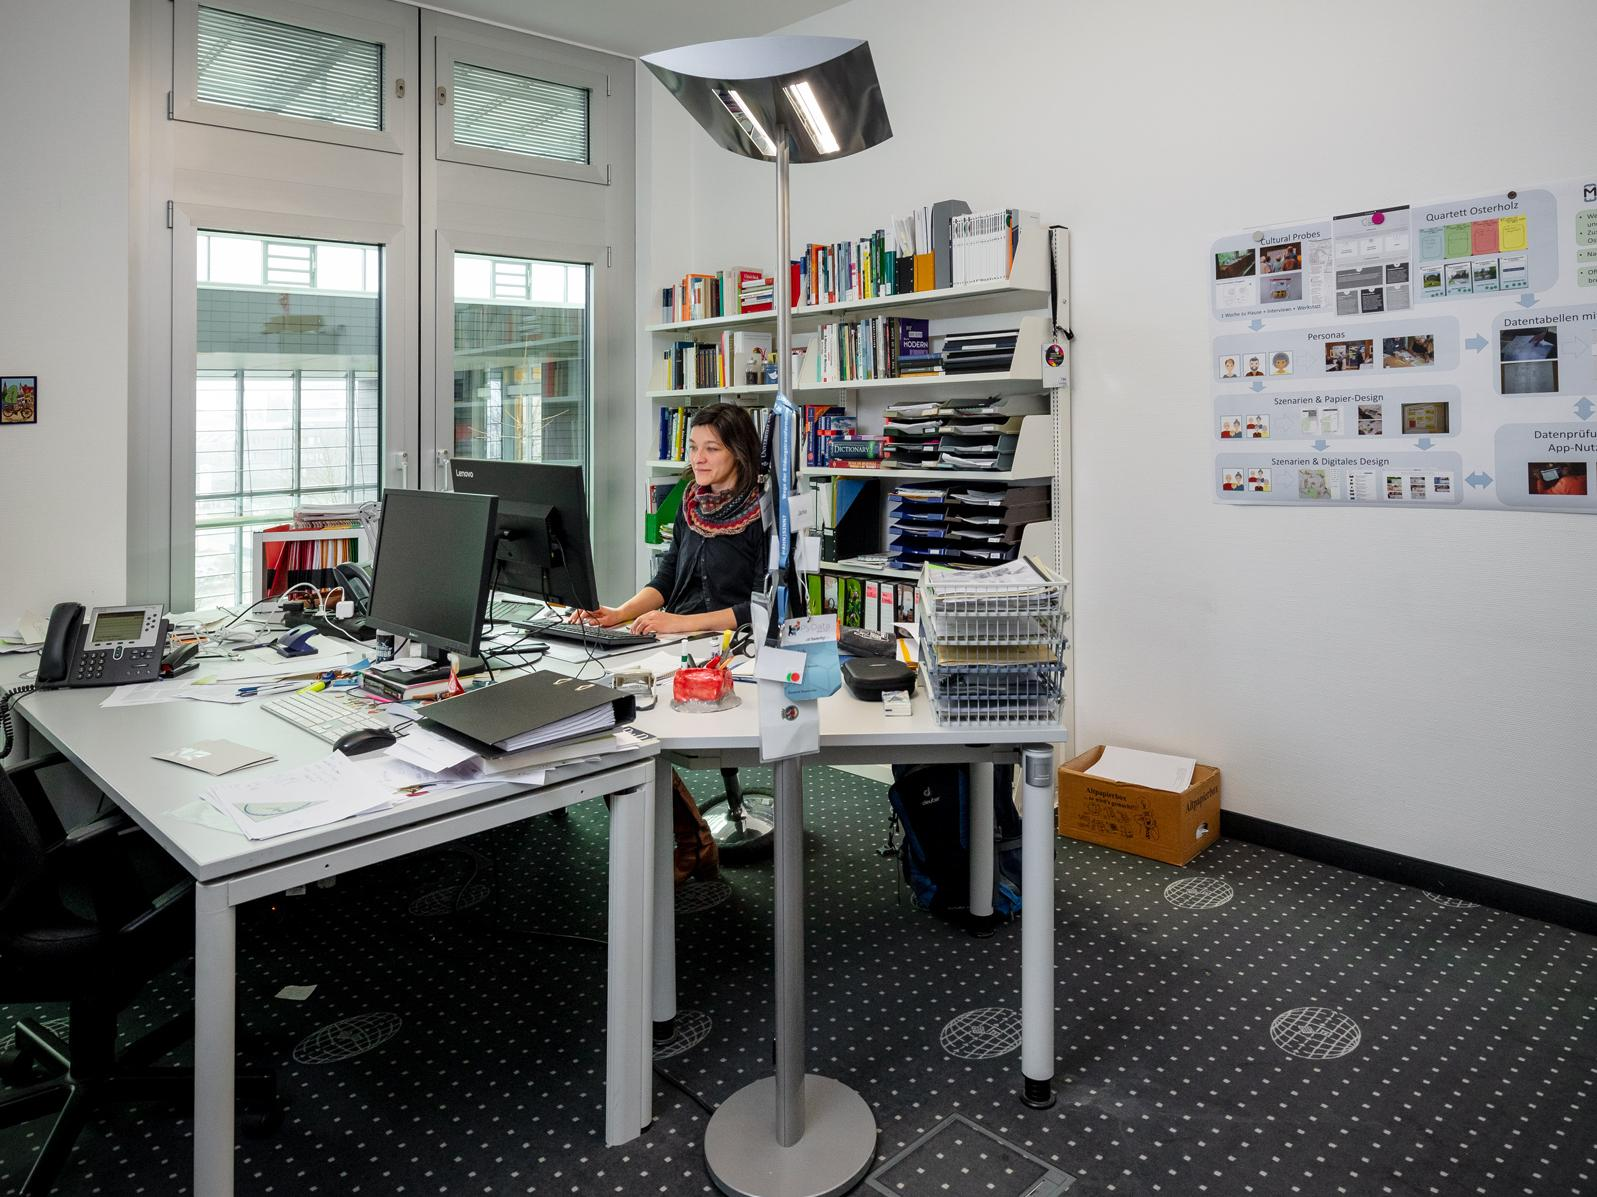 Dr. Juliane Jarke sits in her office at the desk and works.